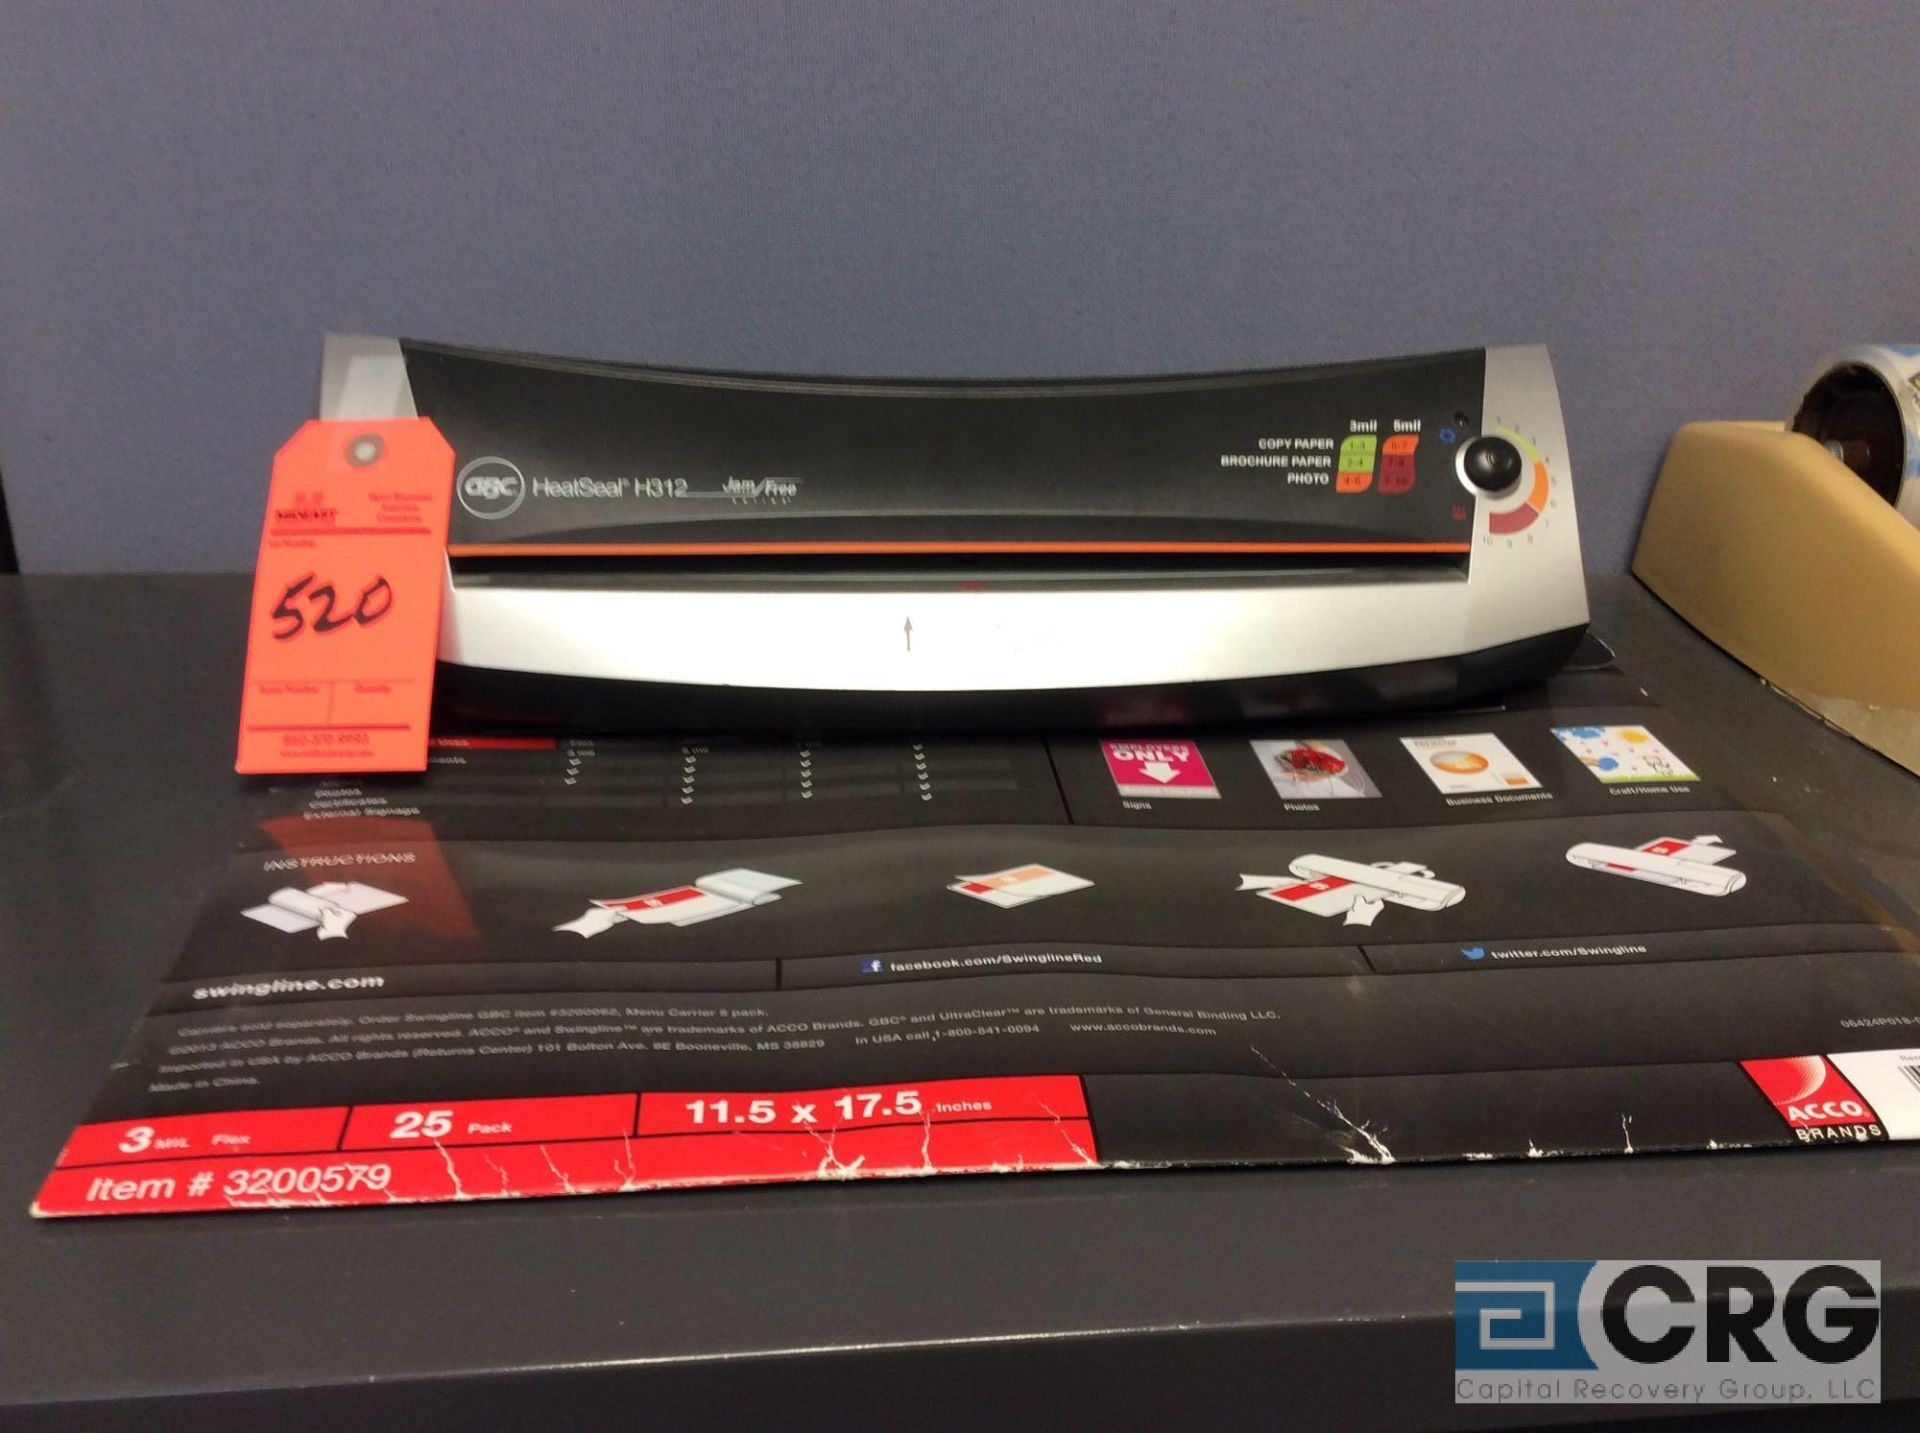 Lot 520 - Lot of (1) GBC heat sealer and (1) Ibico paper binder with accessories